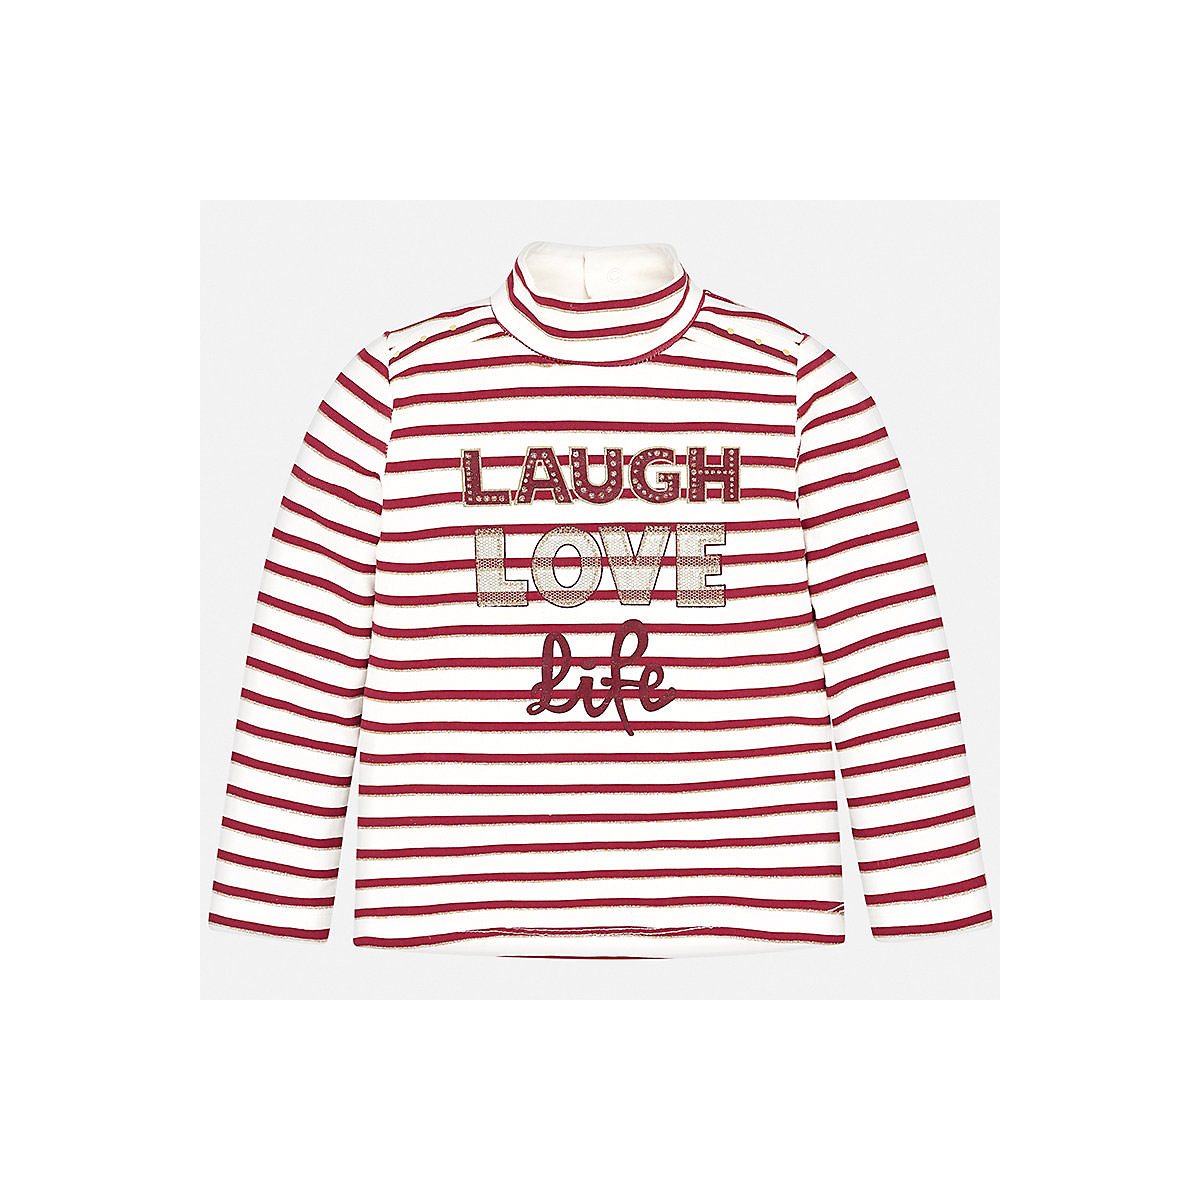 MAYORAL Blouses & Shirts 8849677 Girls Cotton  clothes baby boy children child wear mayoral blouses